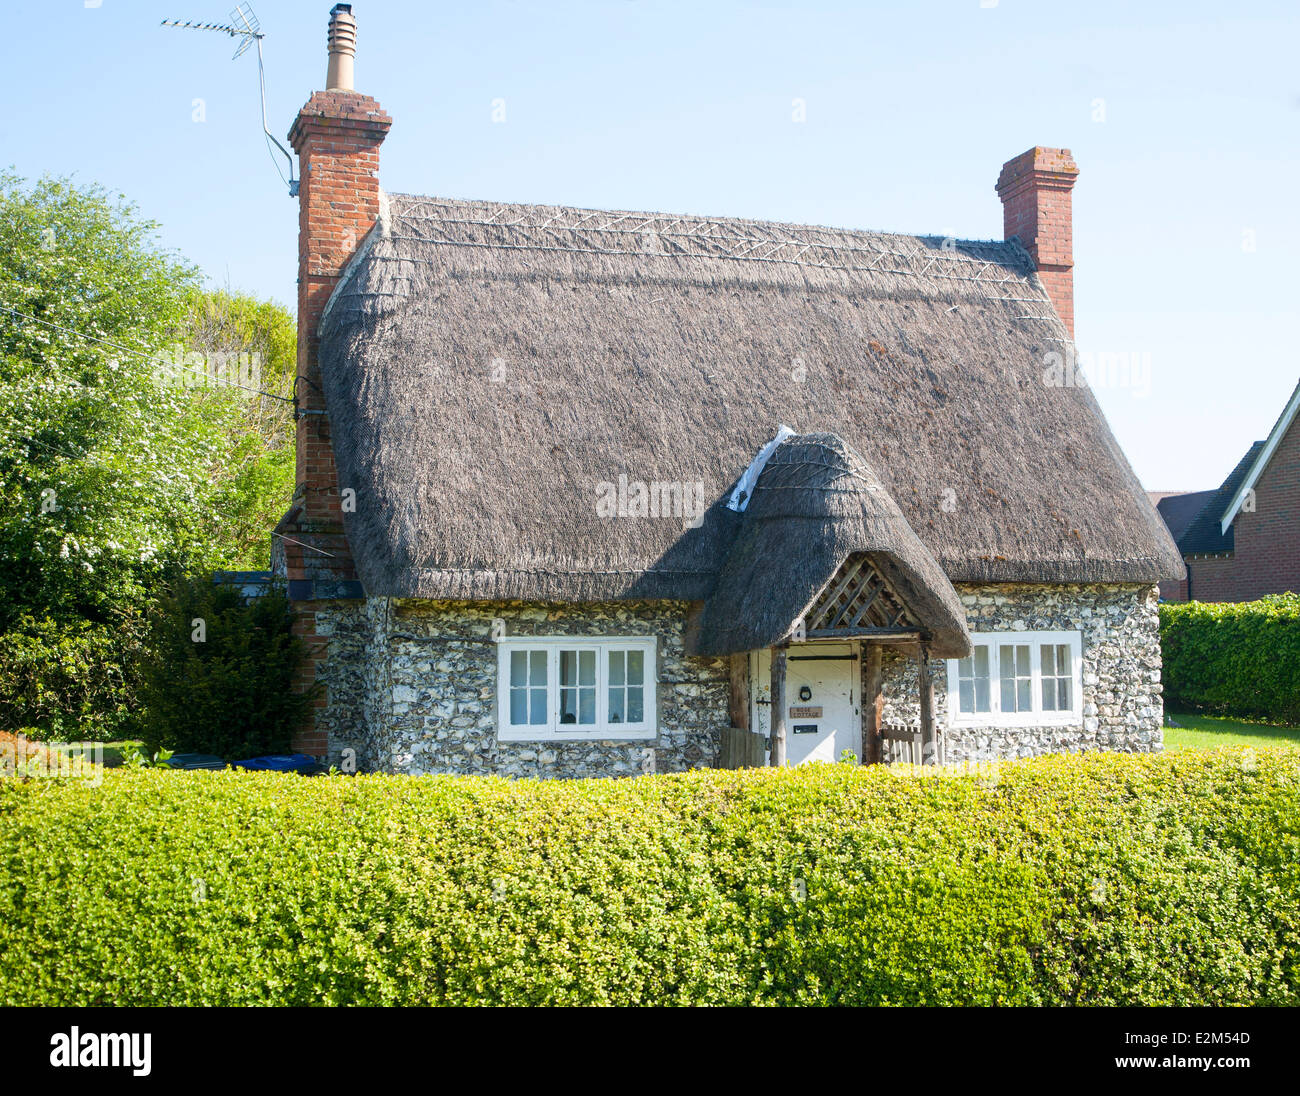 Pretty detached thatch and flint cottage Wilcot village, Wiltshire, England - Stock Image